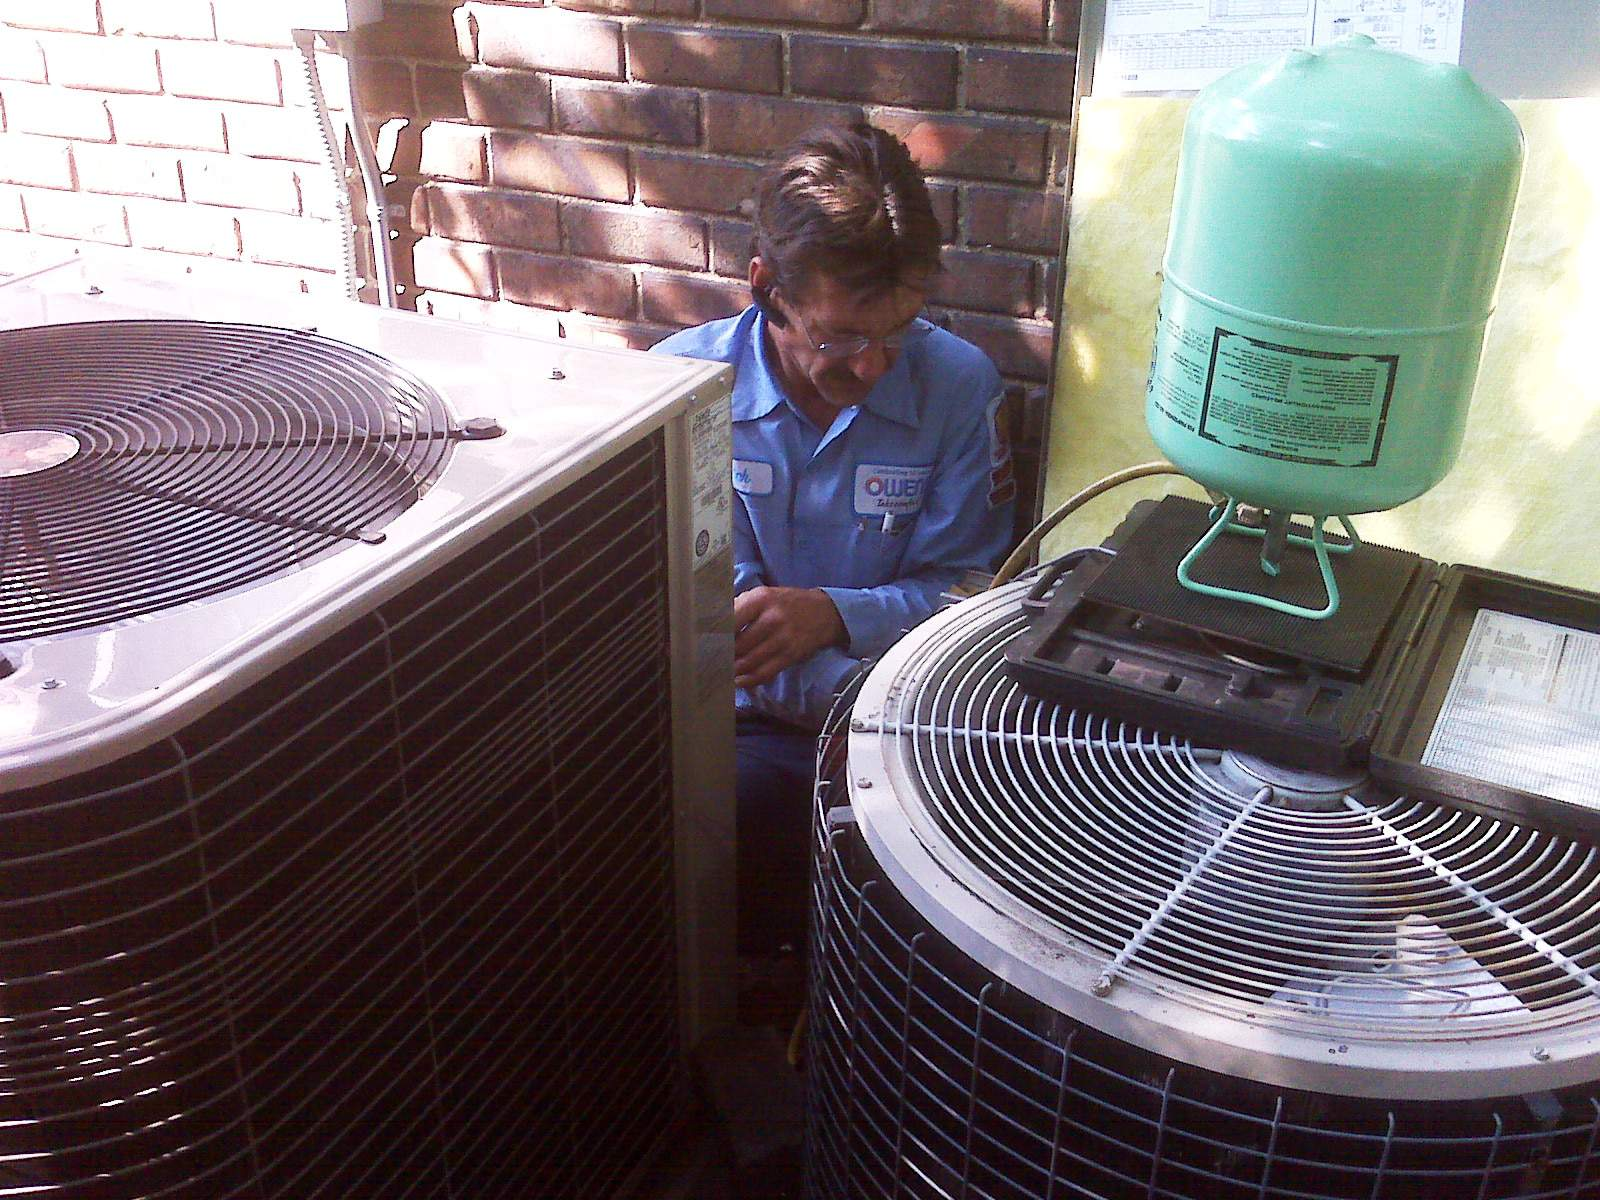 An Owens technician working on air conditioners